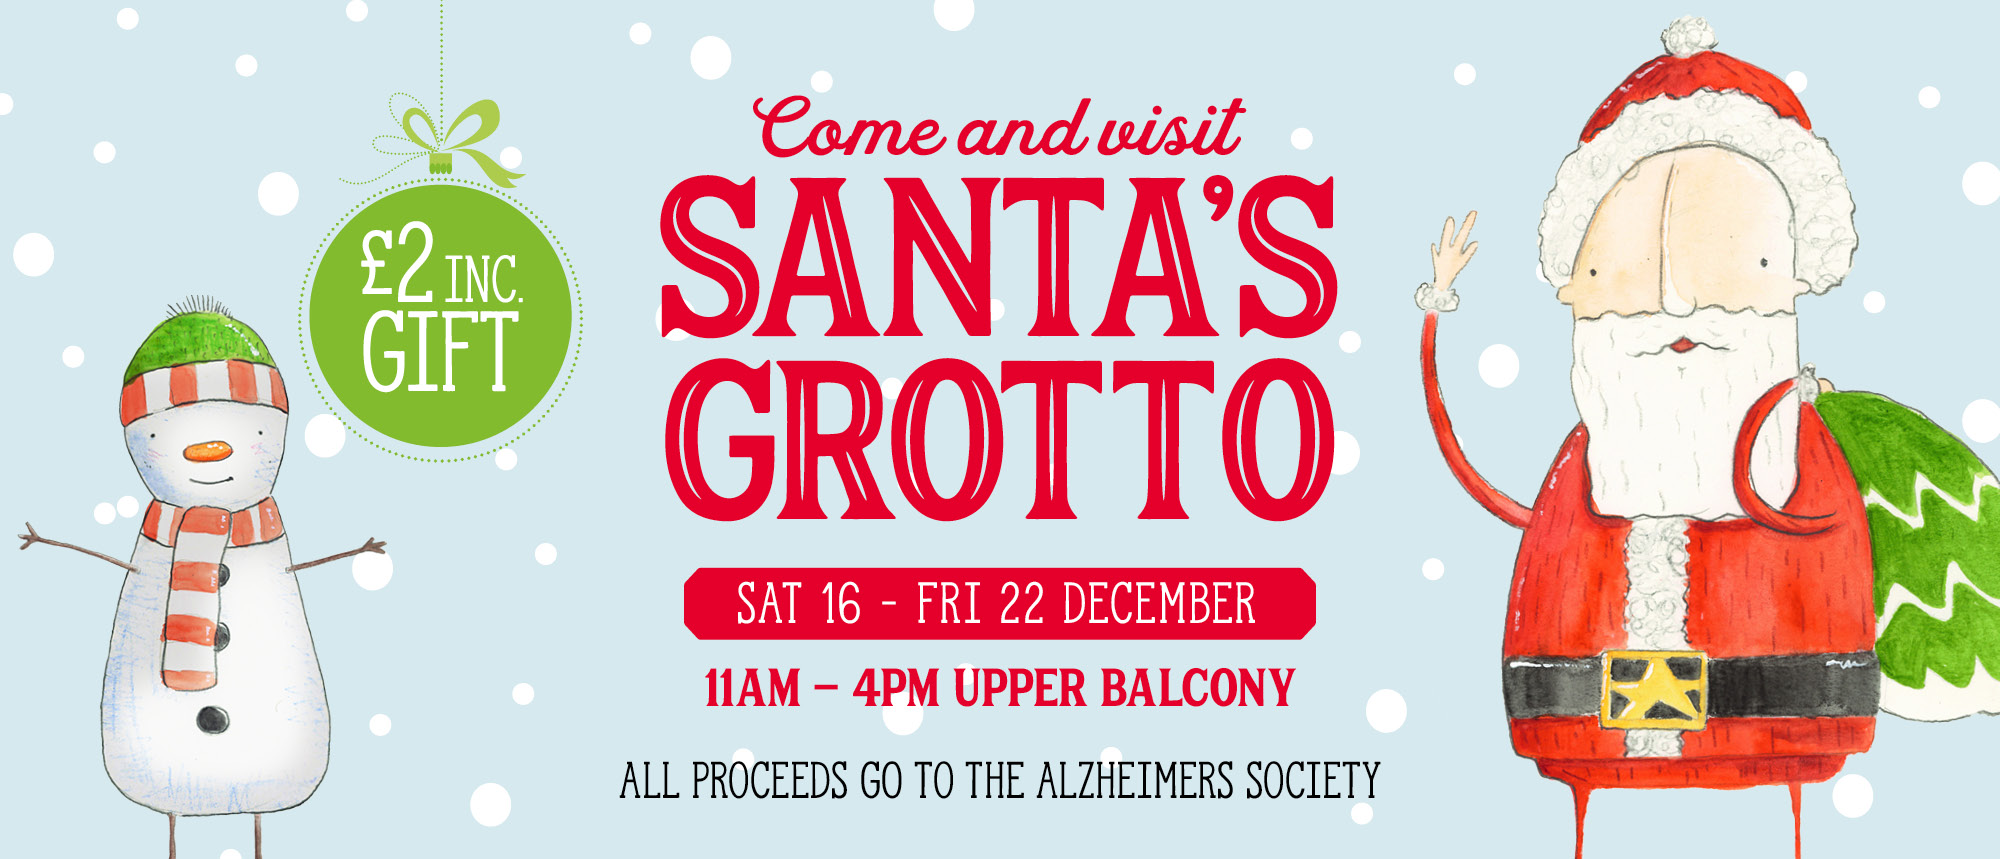 Come and visit Santa's Grotto